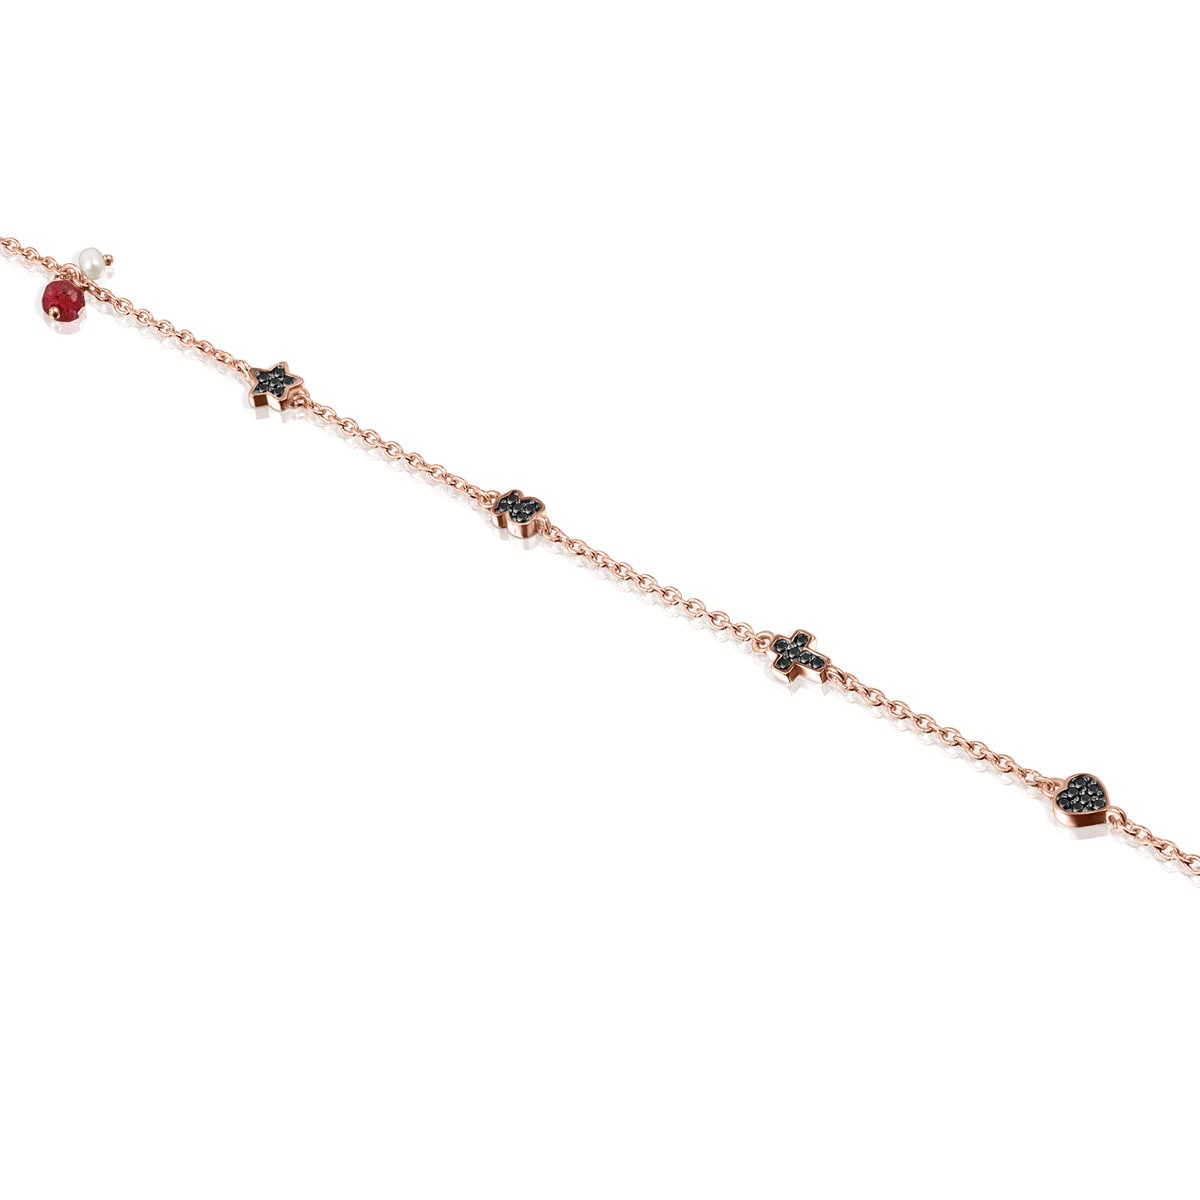 Rose Gold Vermeil Motif Bracelet with Spinels, Ruby and Pearl